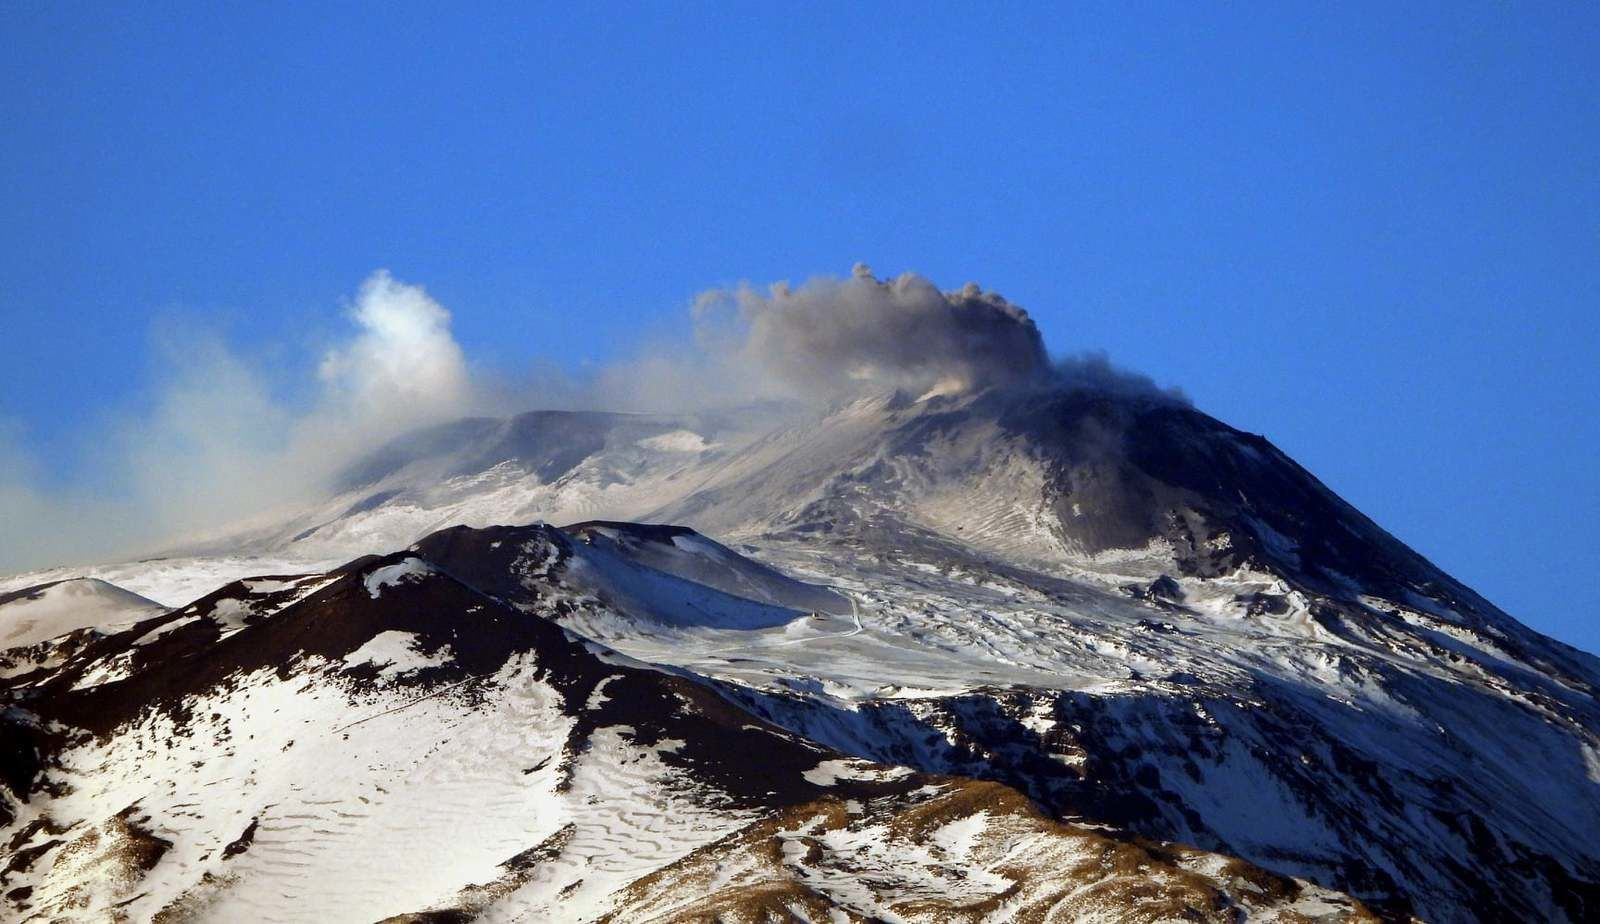 Etna - 01.01.2020 - Cône de la Selle du NSEC - photo INGVvulcani